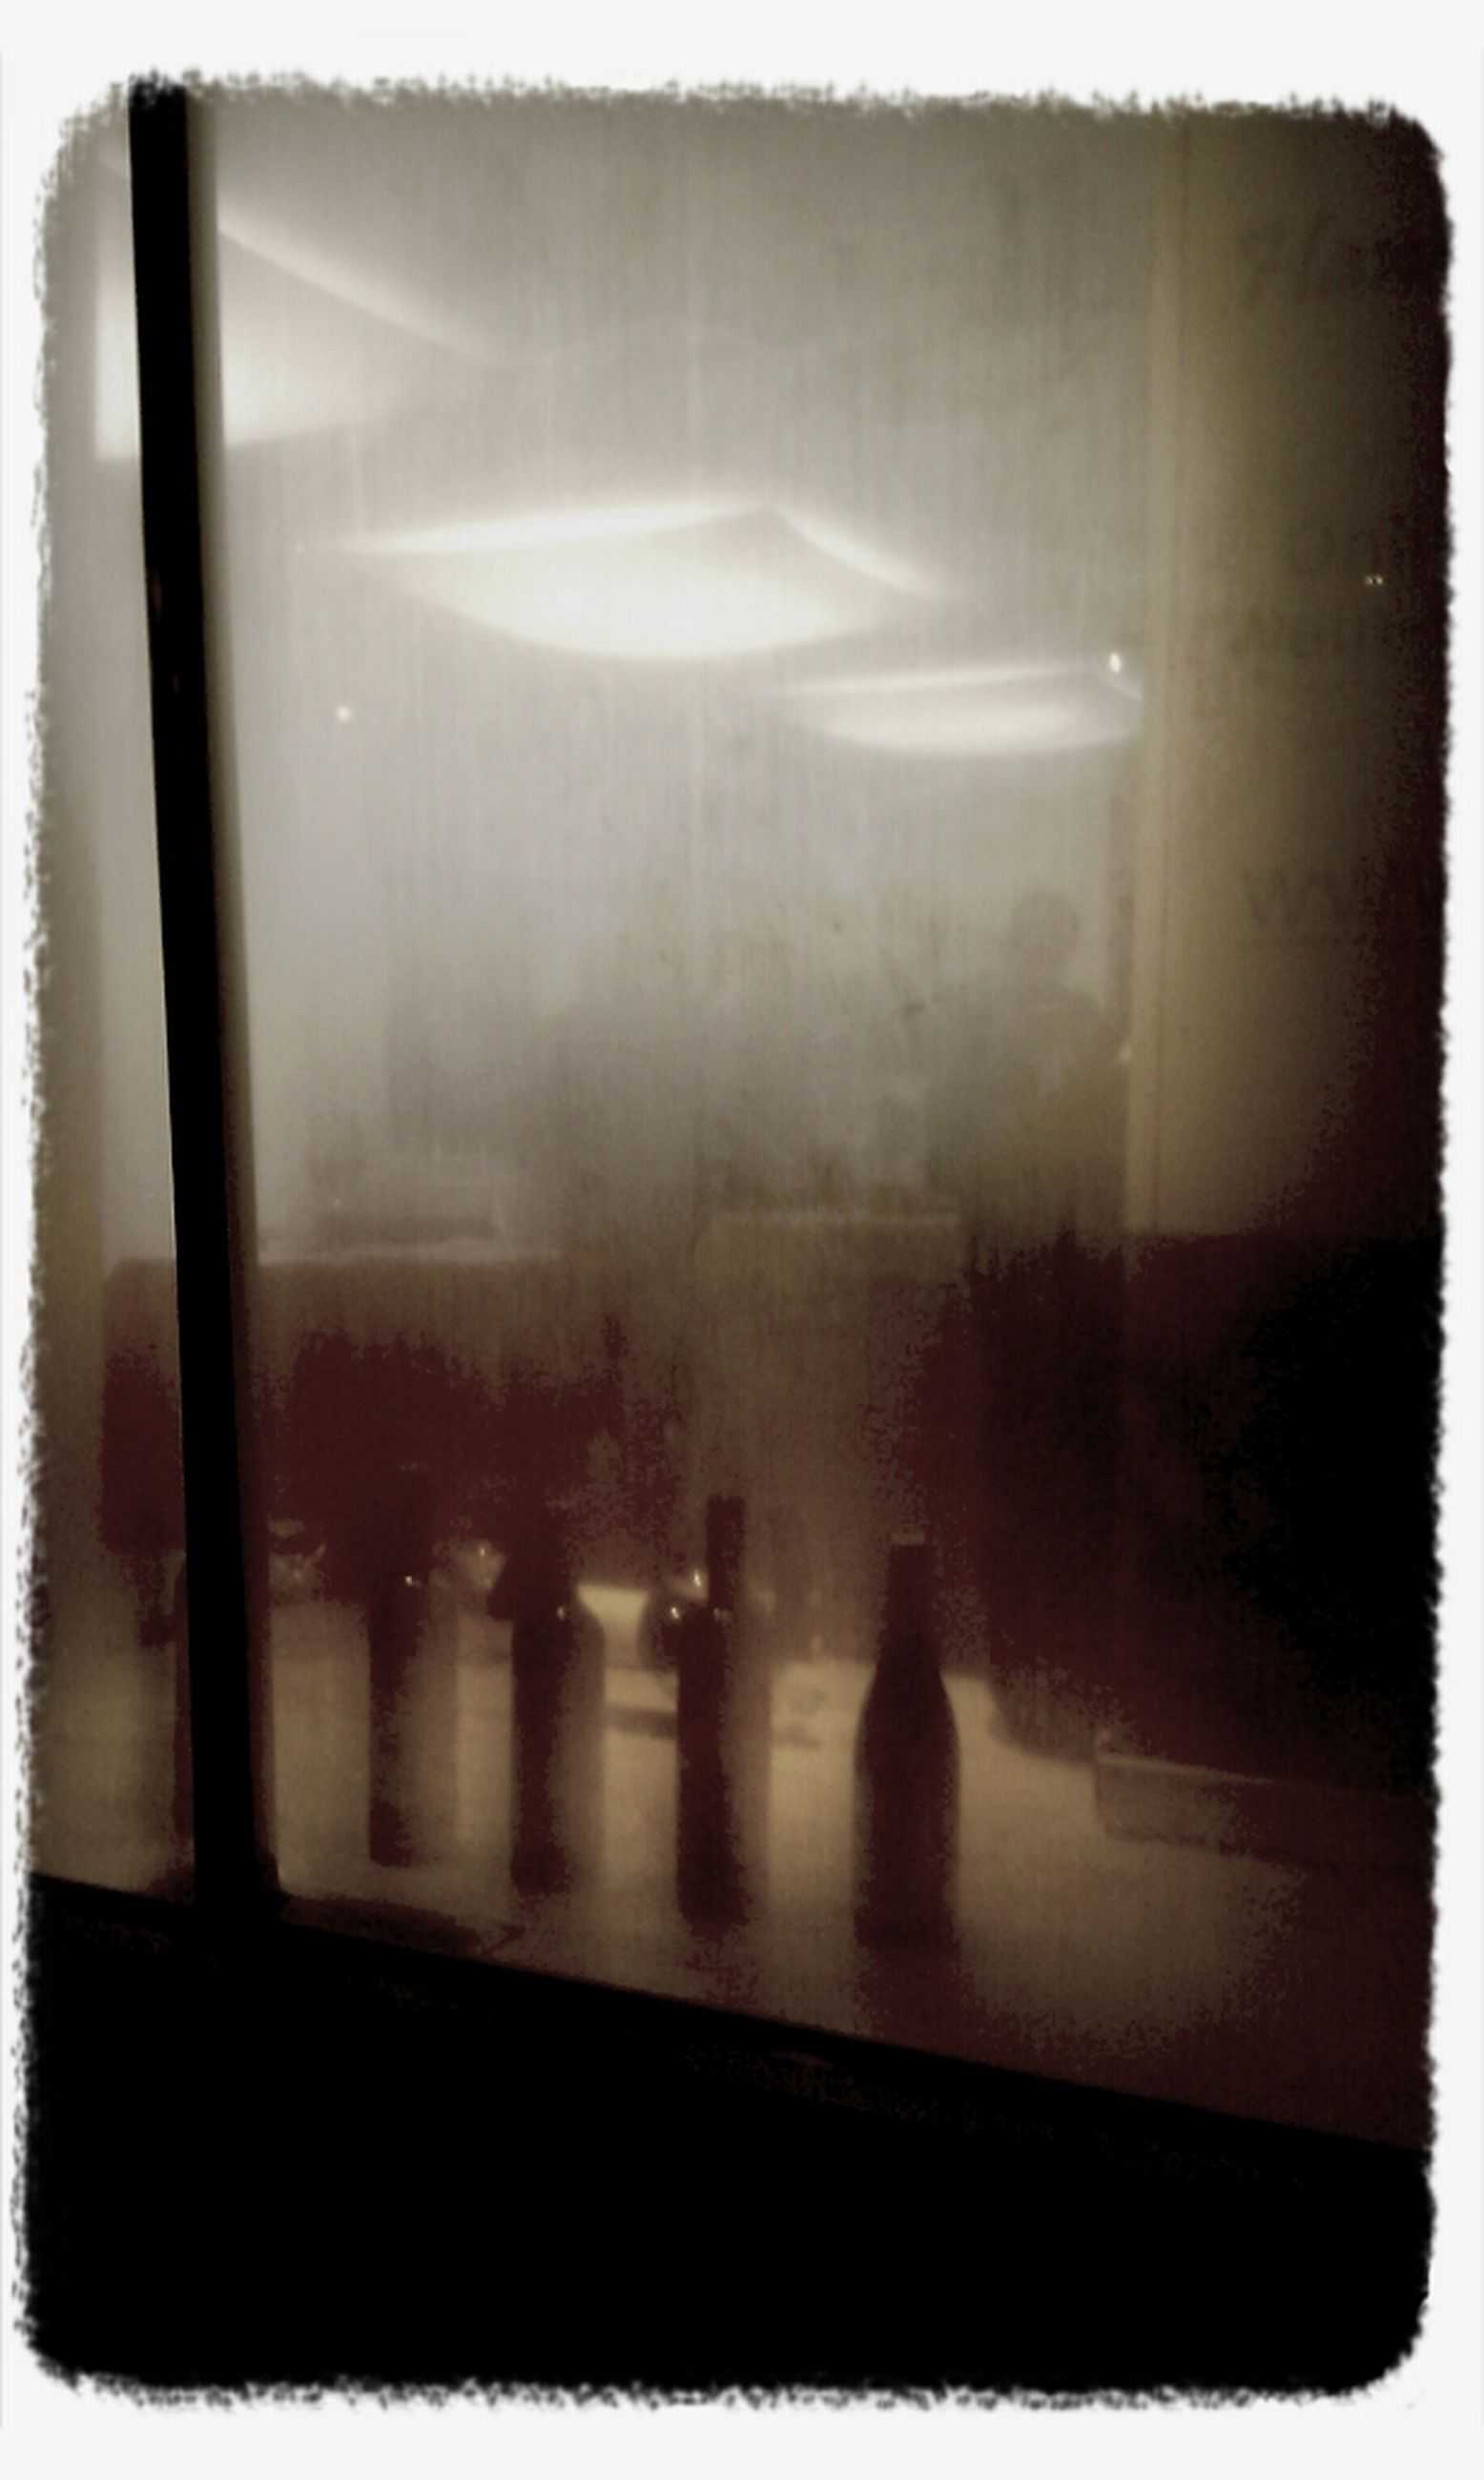 transfer print, indoors, window, glass - material, transparent, auto post production filter, glass, reflection, water, looking through window, vehicle interior, wet, close-up, transportation, rain, no people, illuminated, mode of transport, day, drop